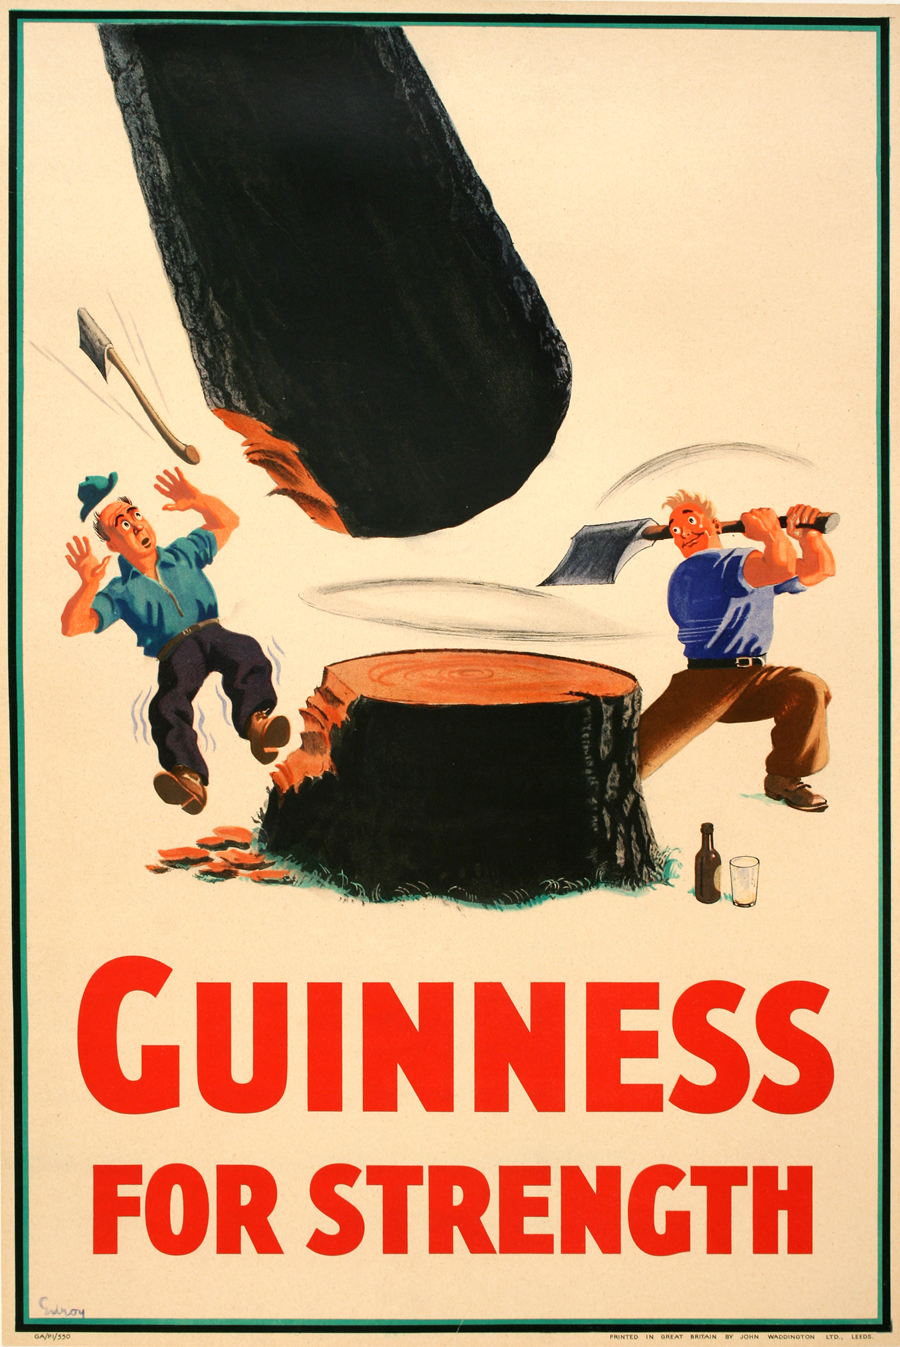 """""""Guinness for strength"""" became a popular tagline in the 1930s and pictured people performing incredible feats of strength thanks to the brew."""